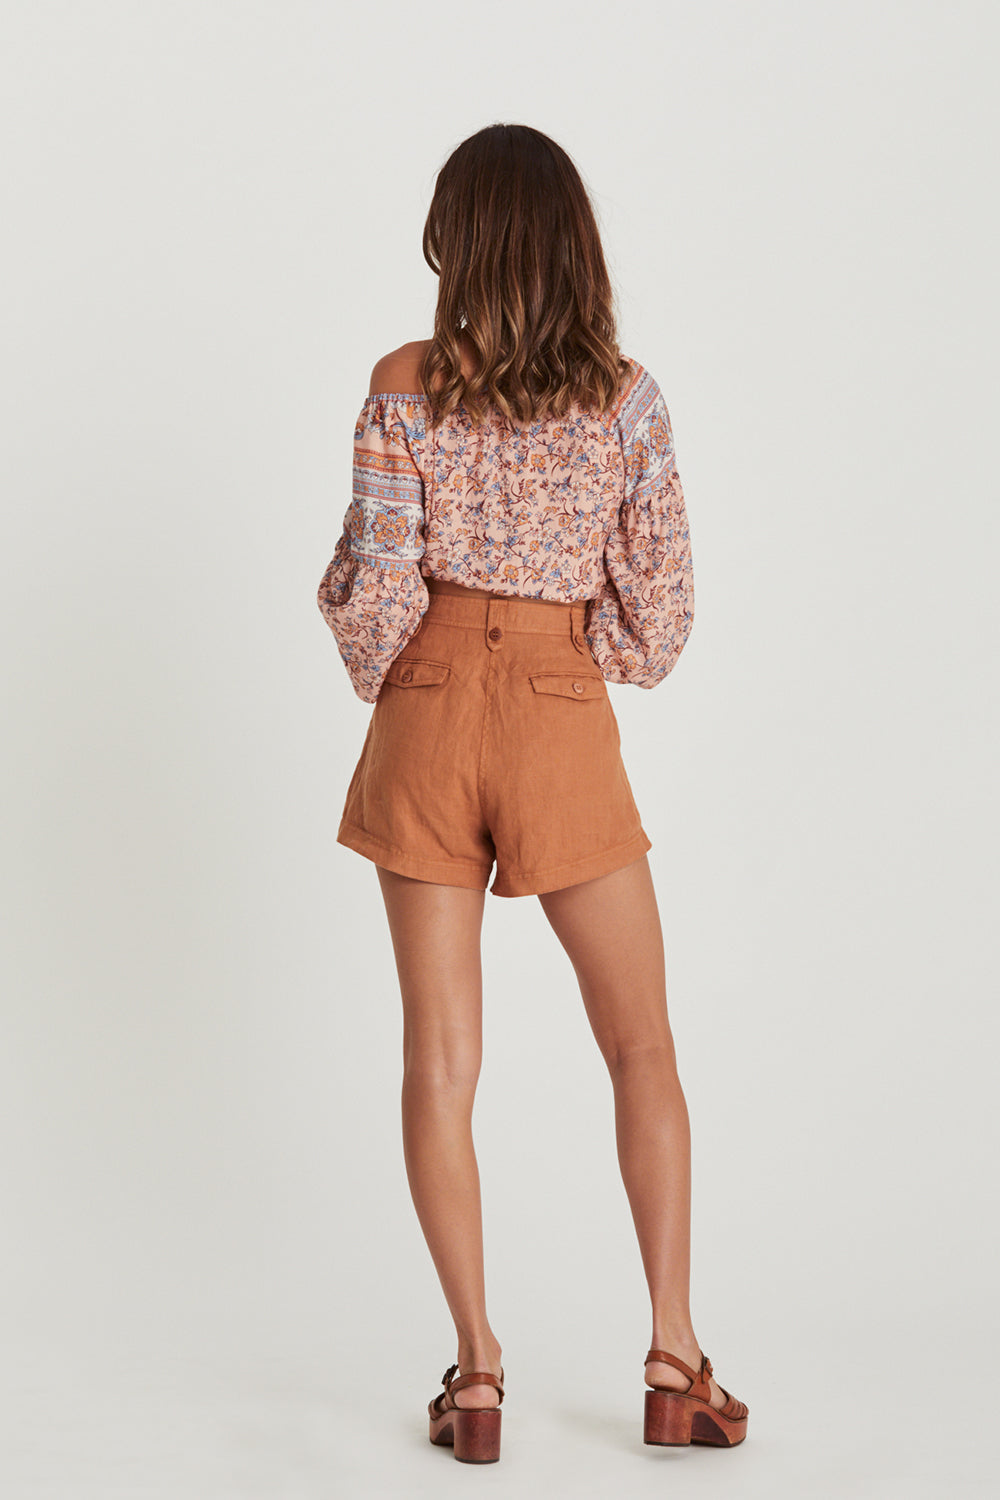 Chloe Shorts in Bronze